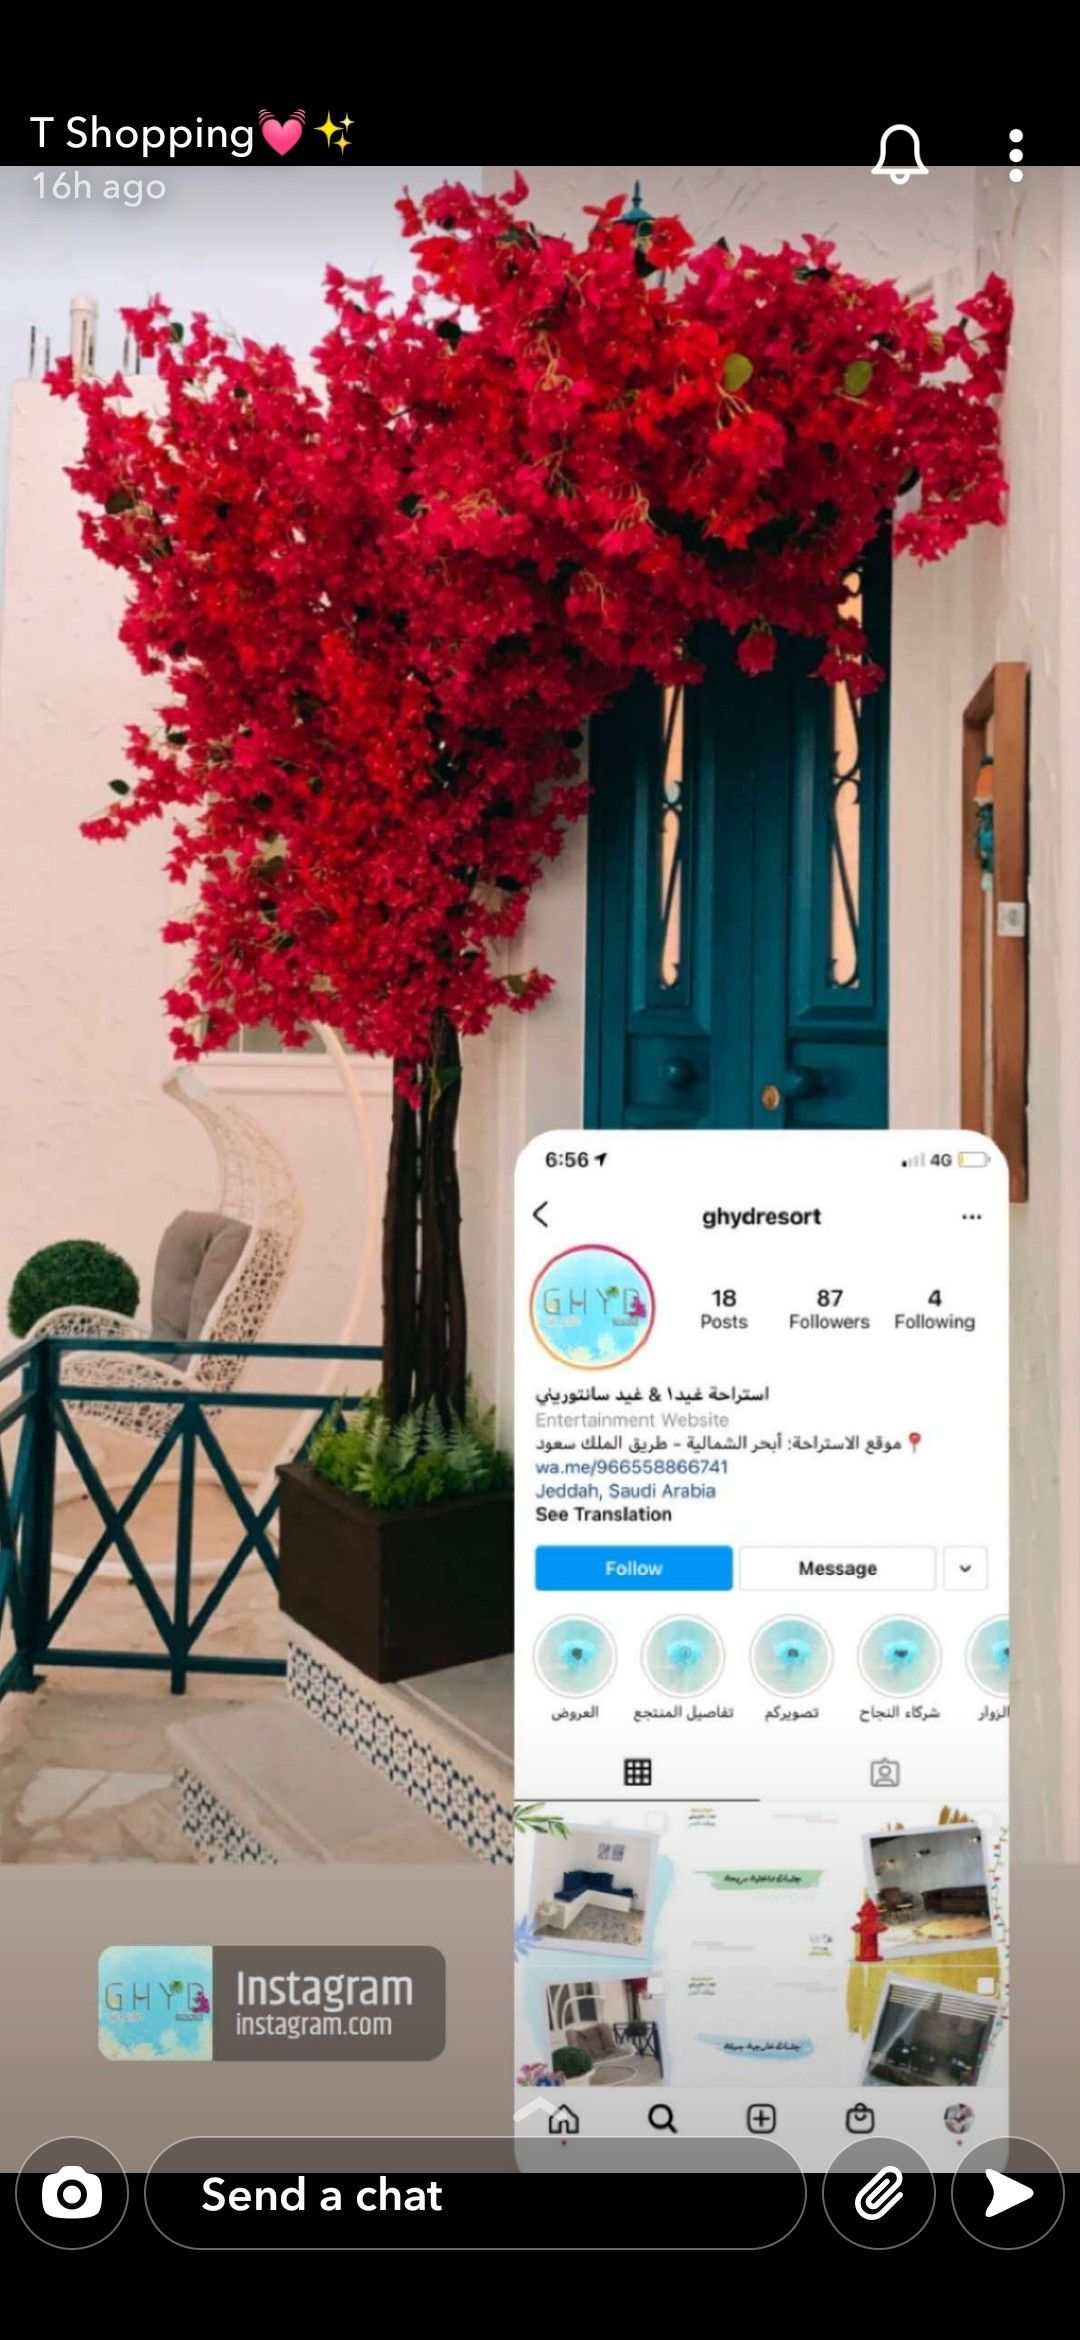 Pin By Sarah Abdullah On Jeddah In 2021 Jeddah Instagram Messages